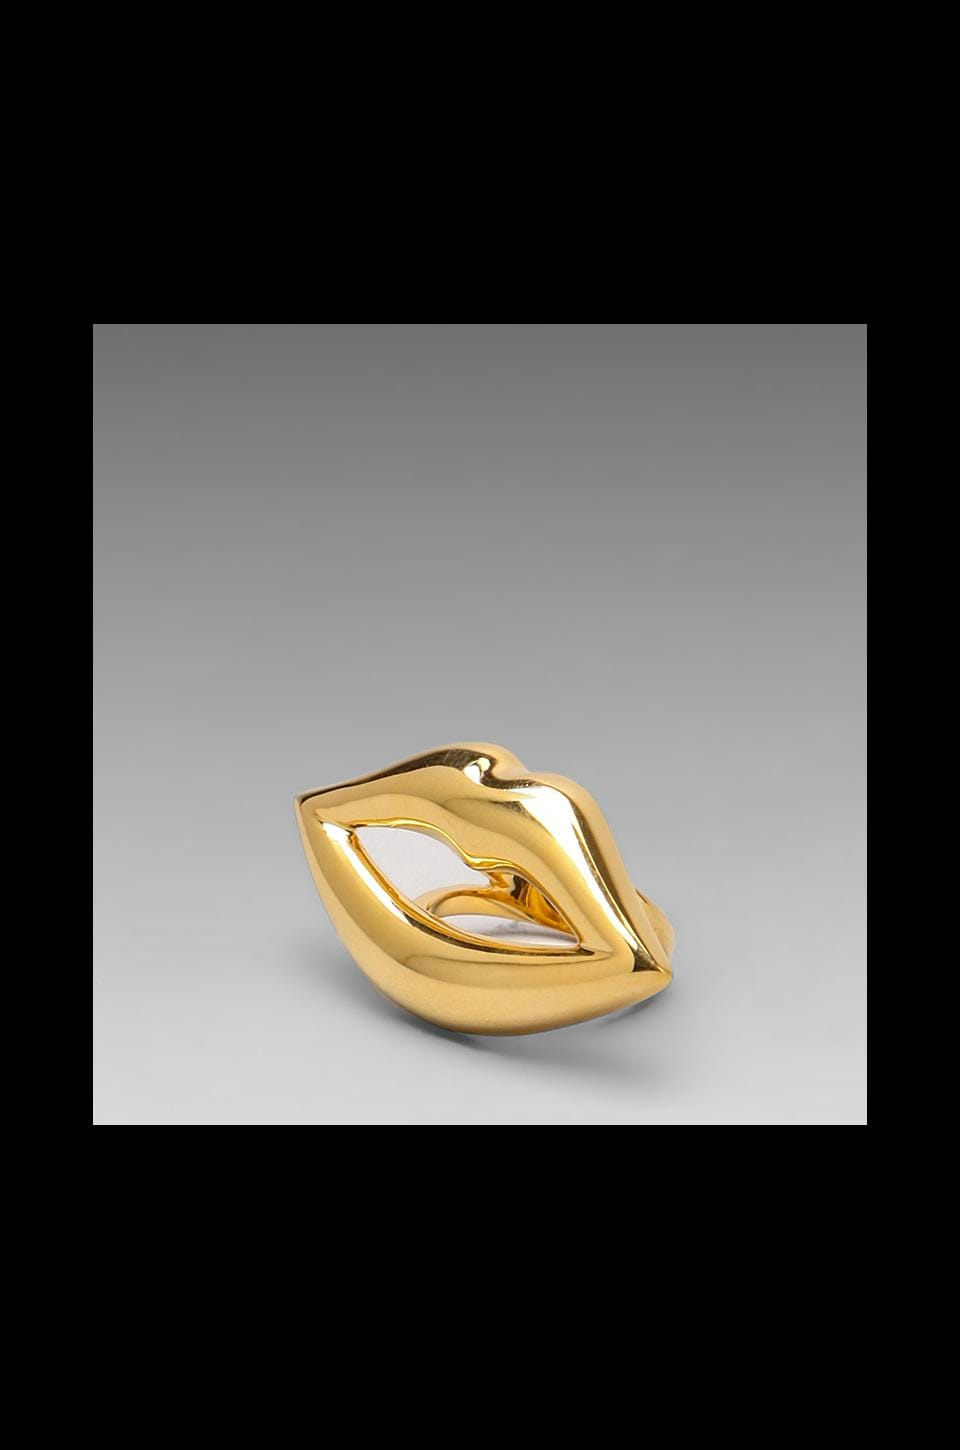 CC Skye Kiss Me Lips Ring in Gold